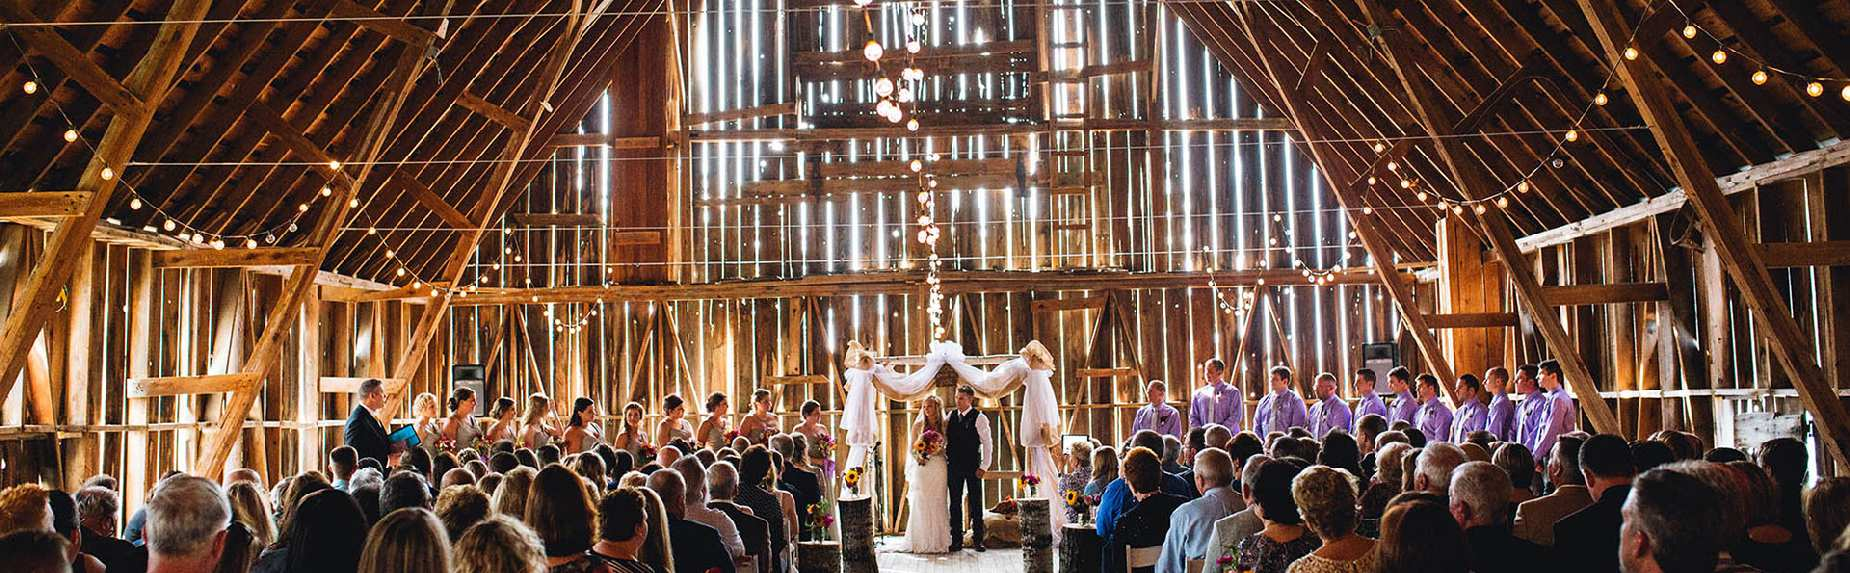 Charlevoix wedding venue Shanahan's Barn